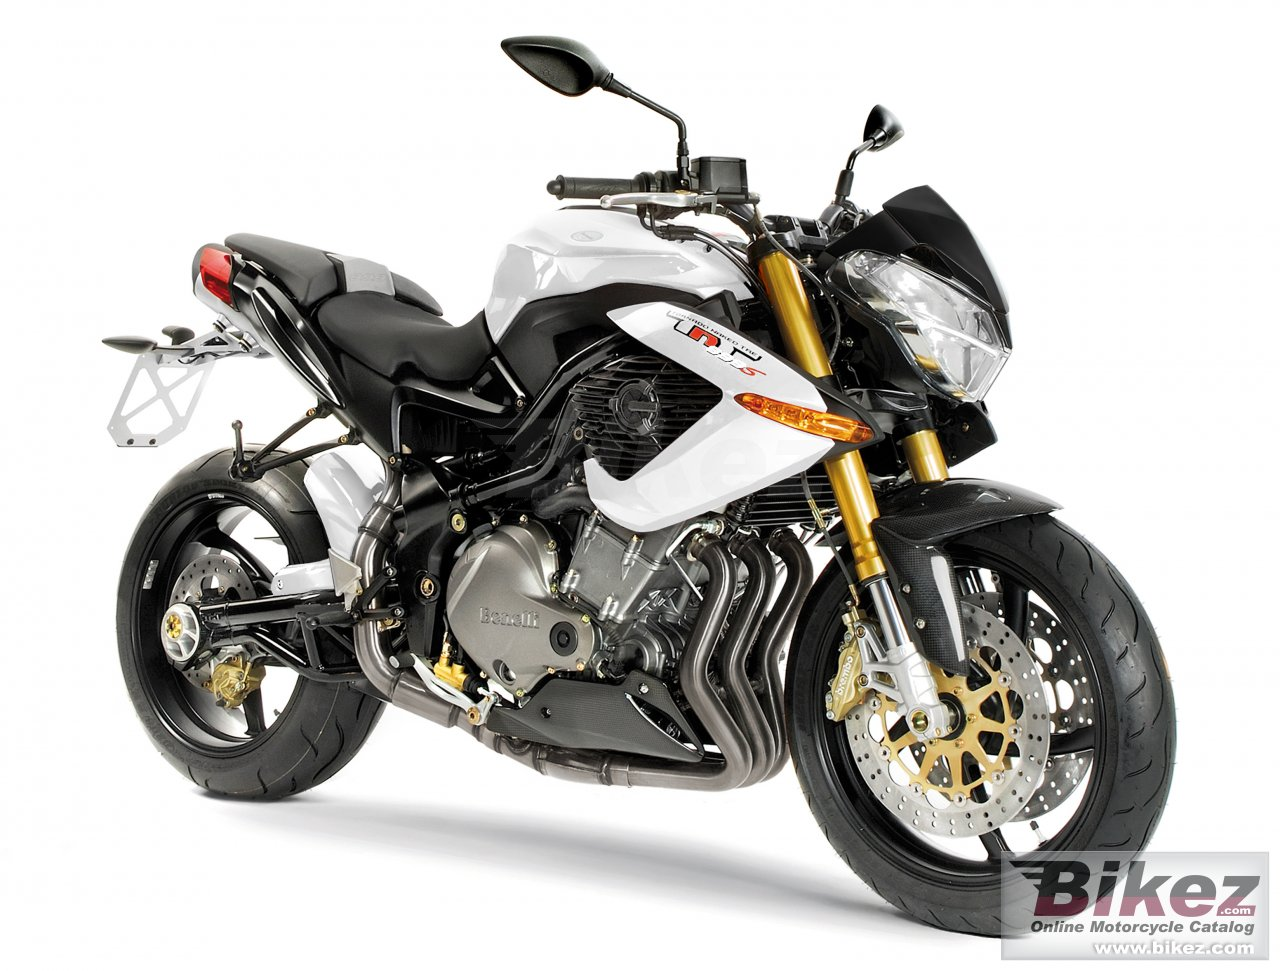 Big Benelli tnt 899s picture and wallpaper from Bikez.com